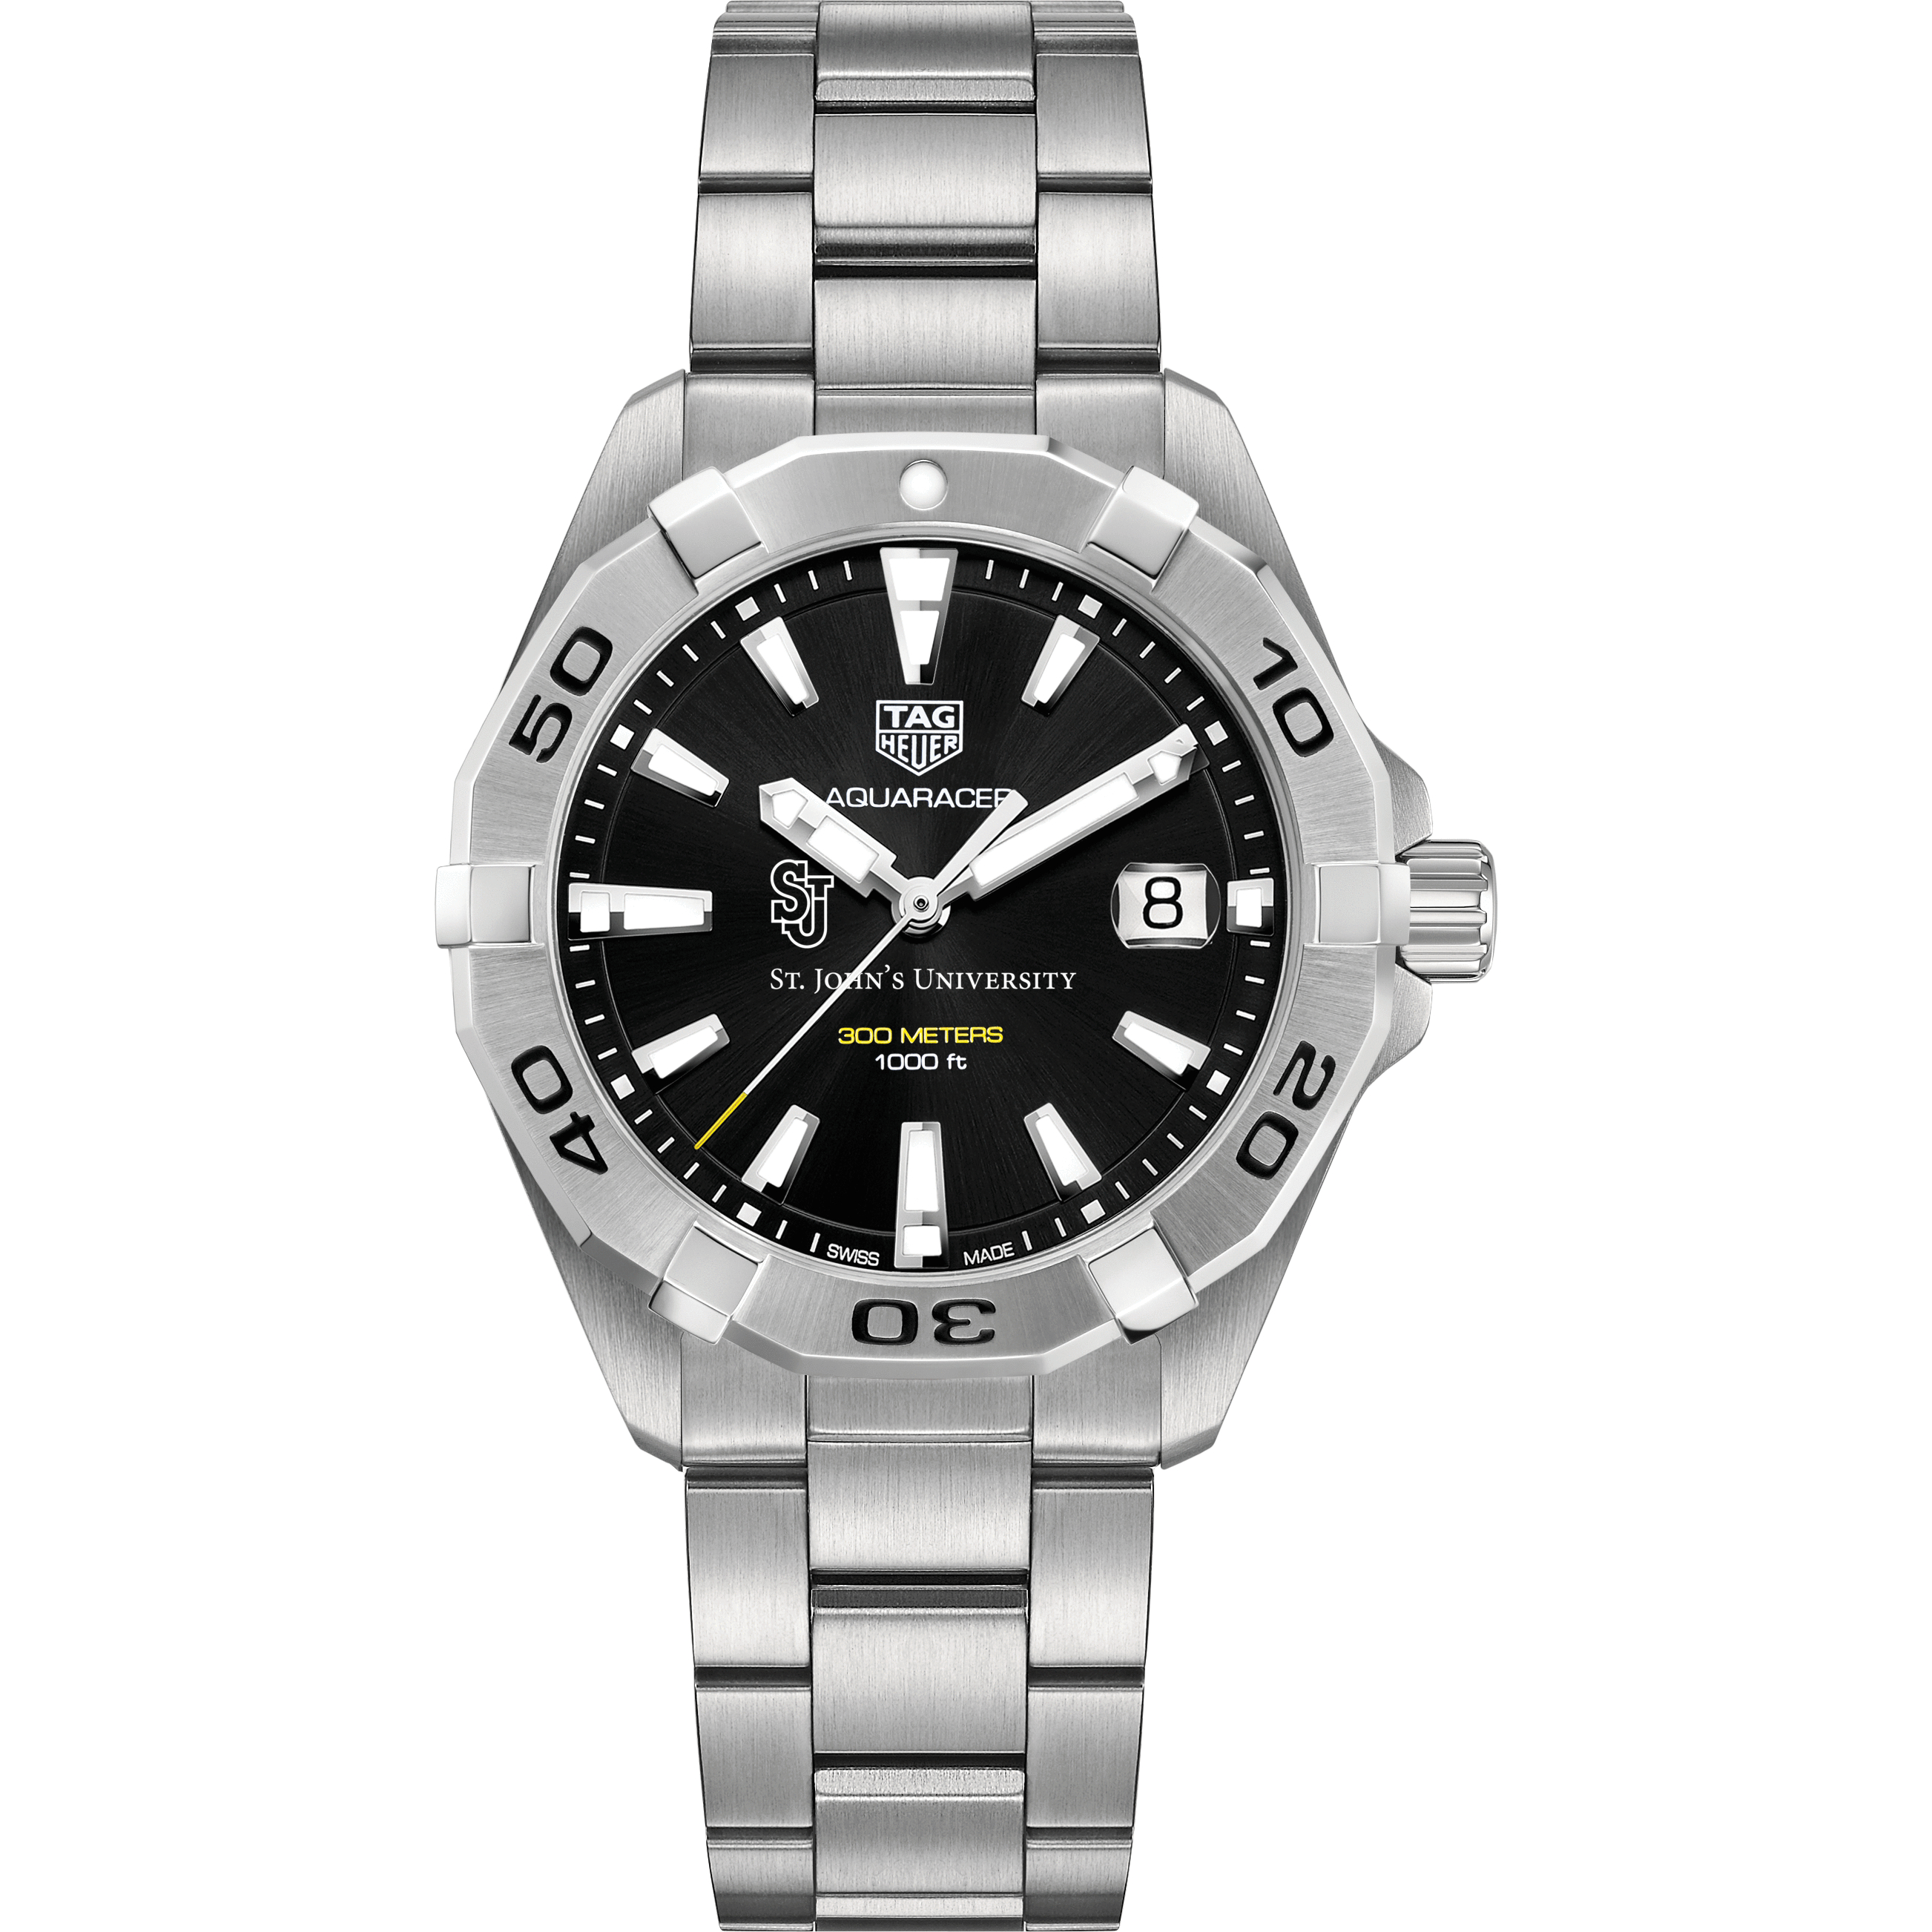 St. John's Men's TAG Heuer Steel Aquaracer with Black Dial - Image 2